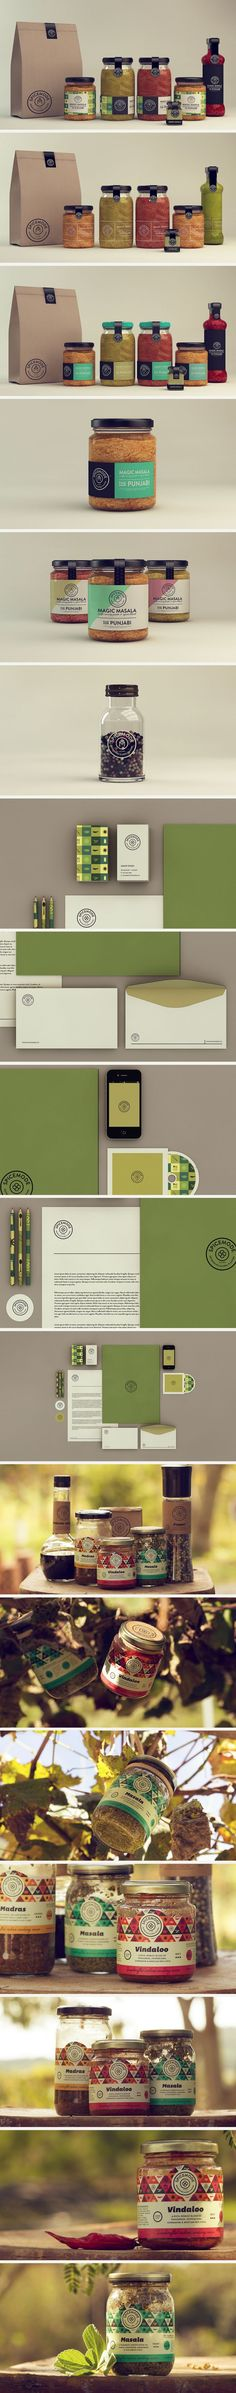 Spicemode Foods extended pin #identity #packaging #branding by Isabela Rodrigues PD